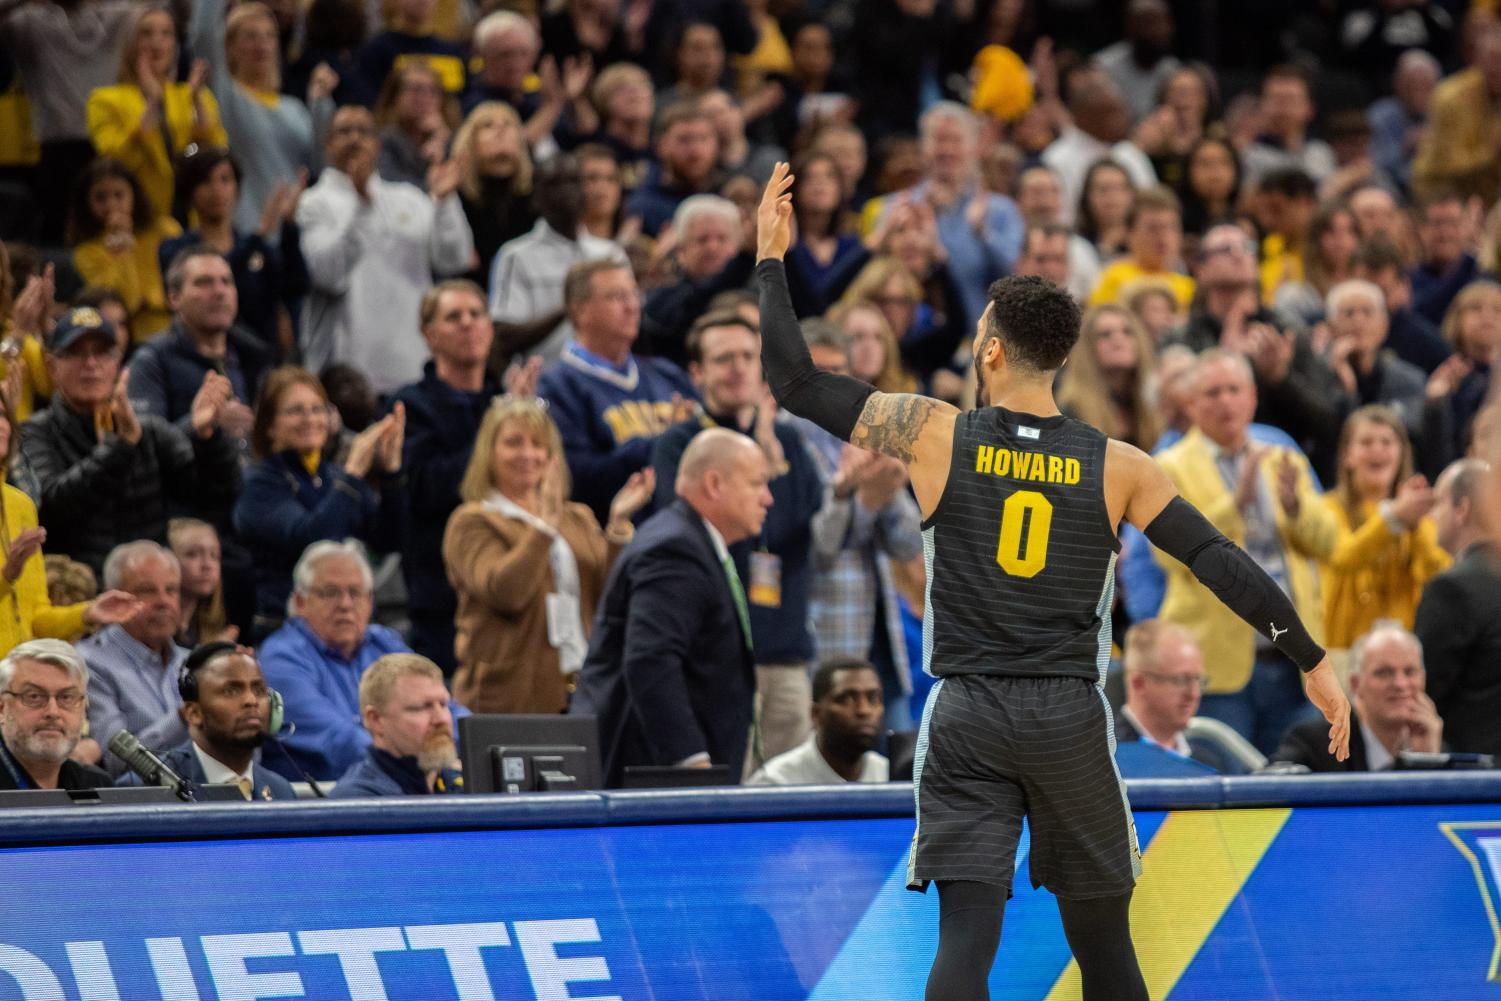 Markus Howard (0) pumps up the crowd at Fiserv Forum Jan. 4. The Golden Eagles went on to upset the then-No. 10 Villanova Wildcats 71-60.